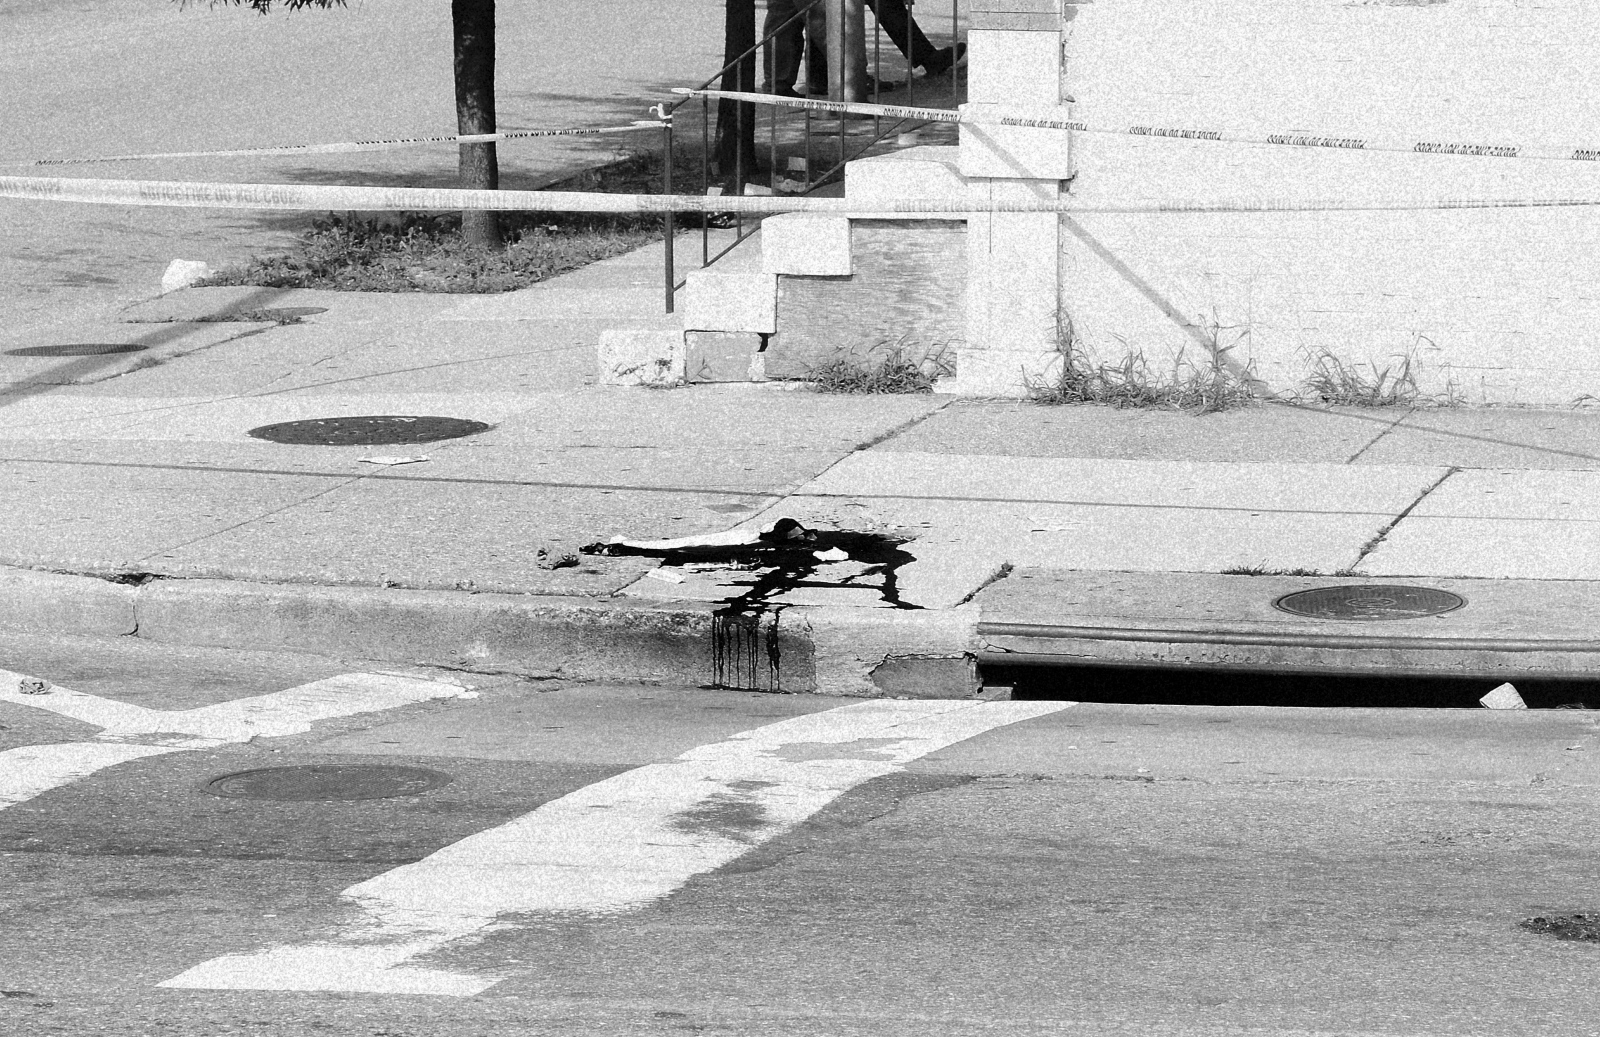 Remains of a shooting between a 12-year-old and an elderly man at the corner of Preston and Milton avenues in E. Baltimore. July 22, 2013.